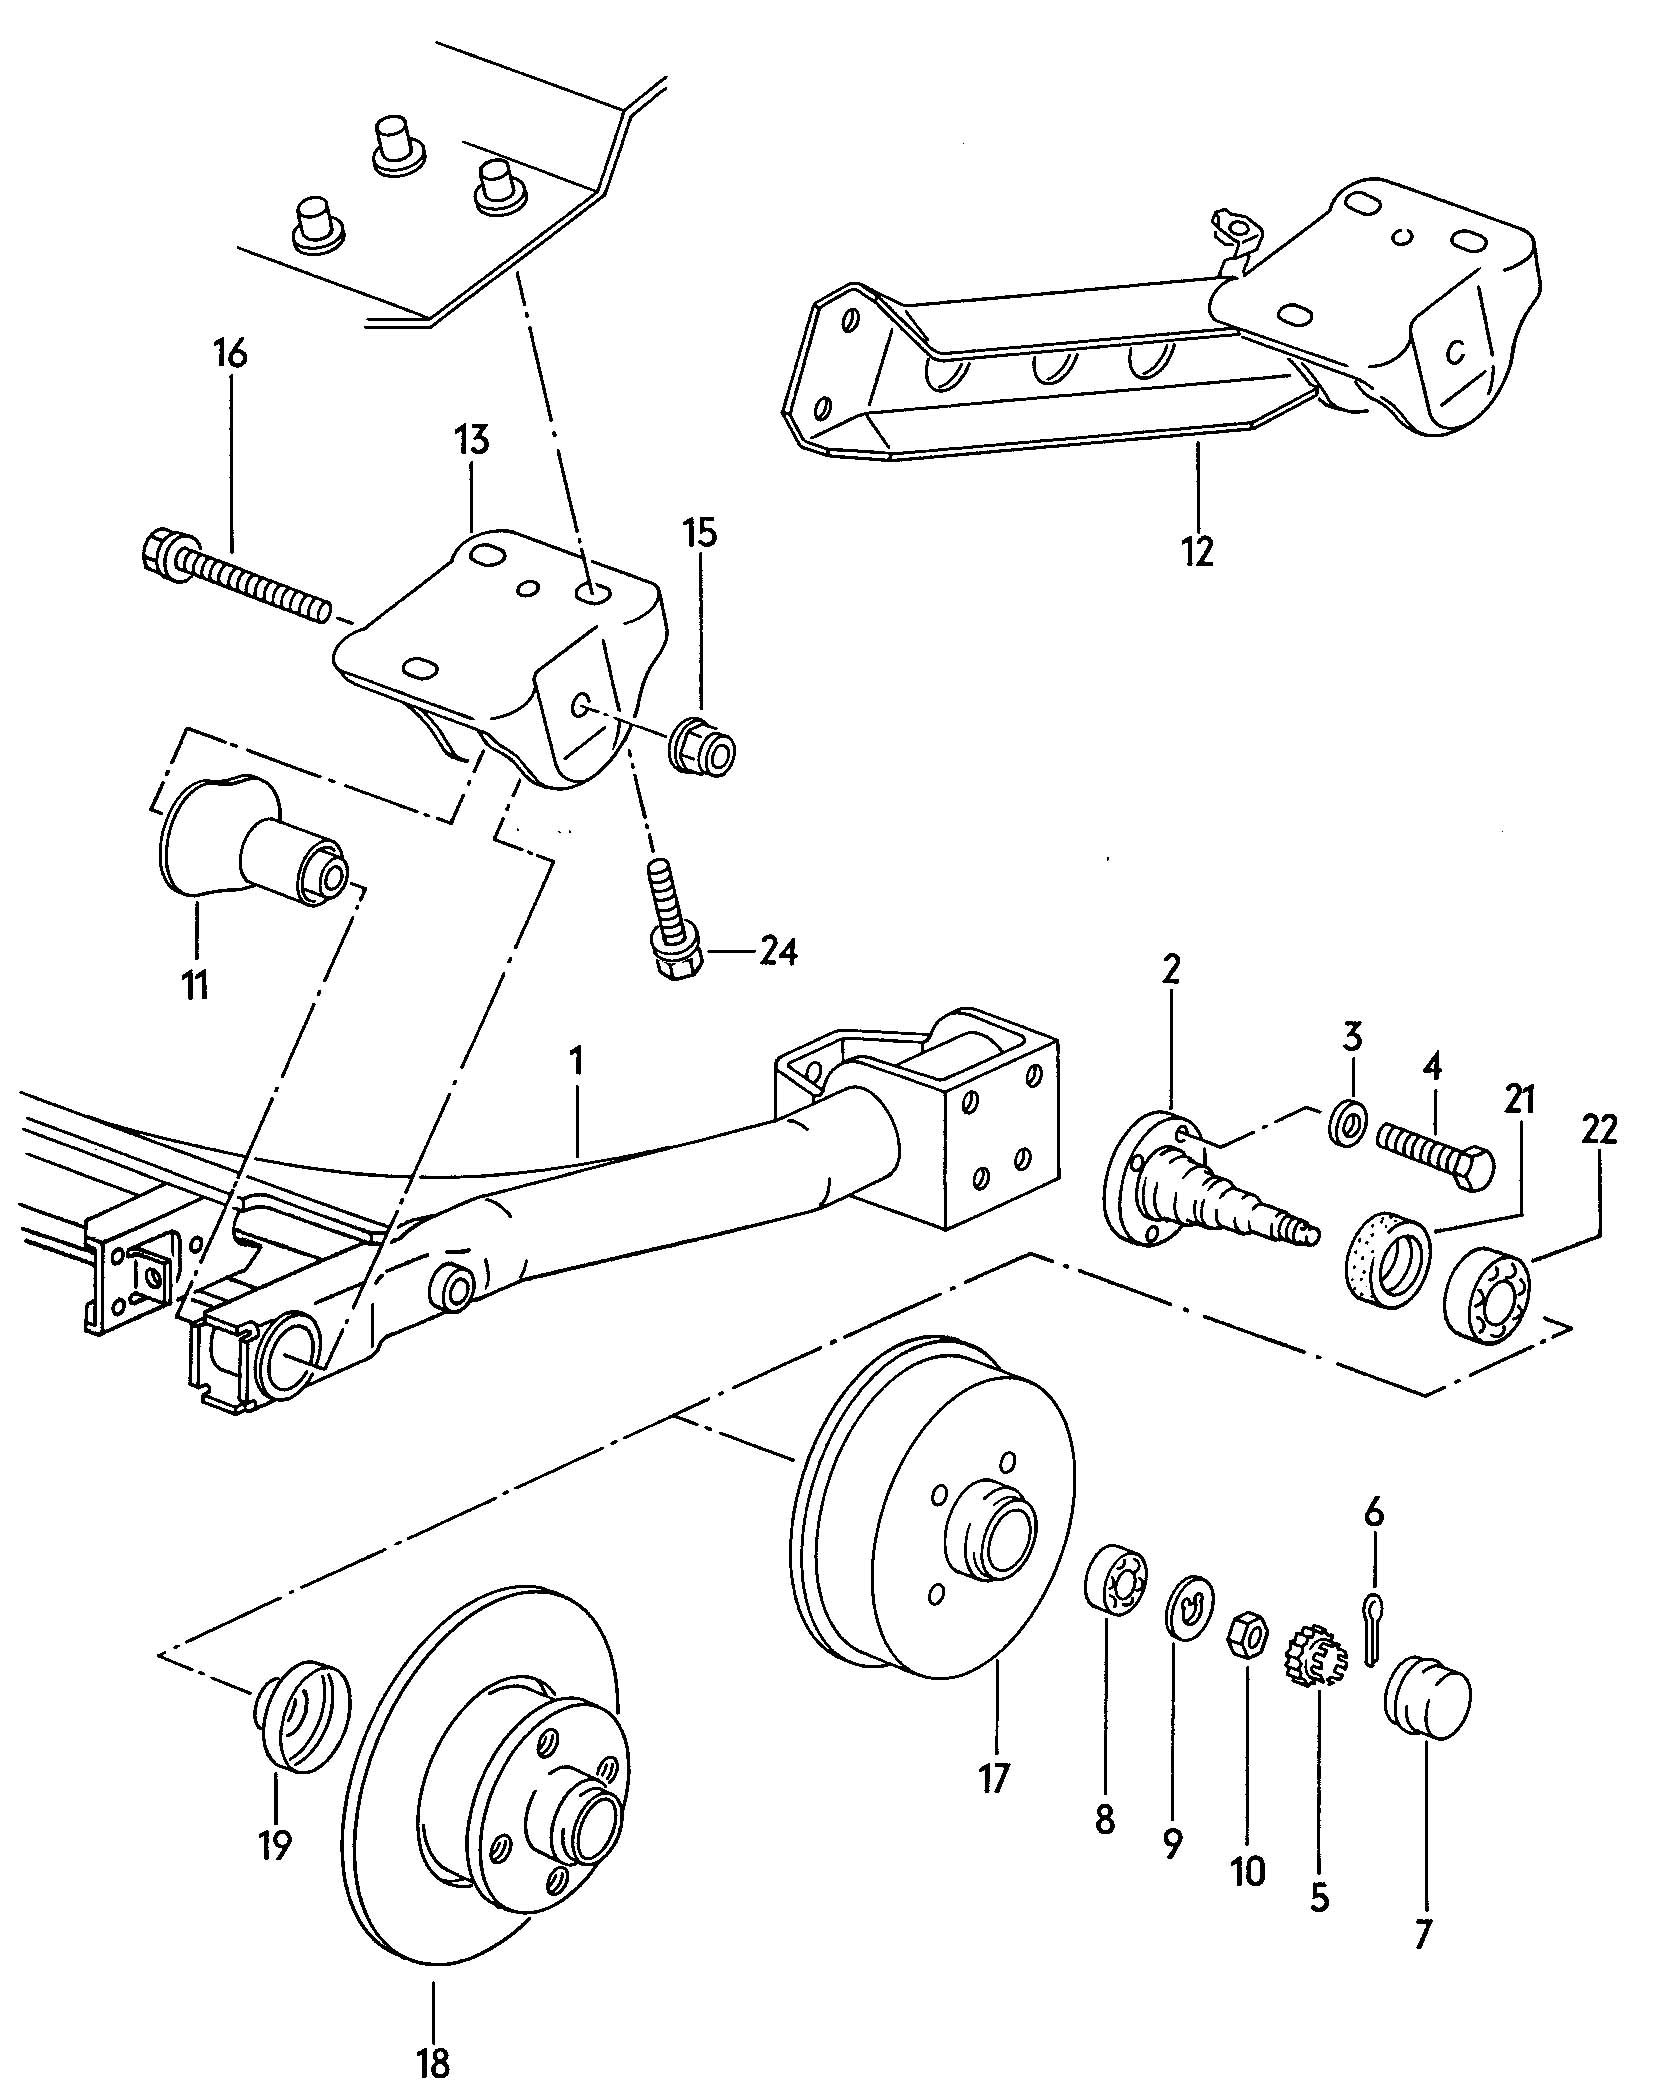 Vw Stub Axle Parts Diagram. Diagram. Auto Wiring Diagram